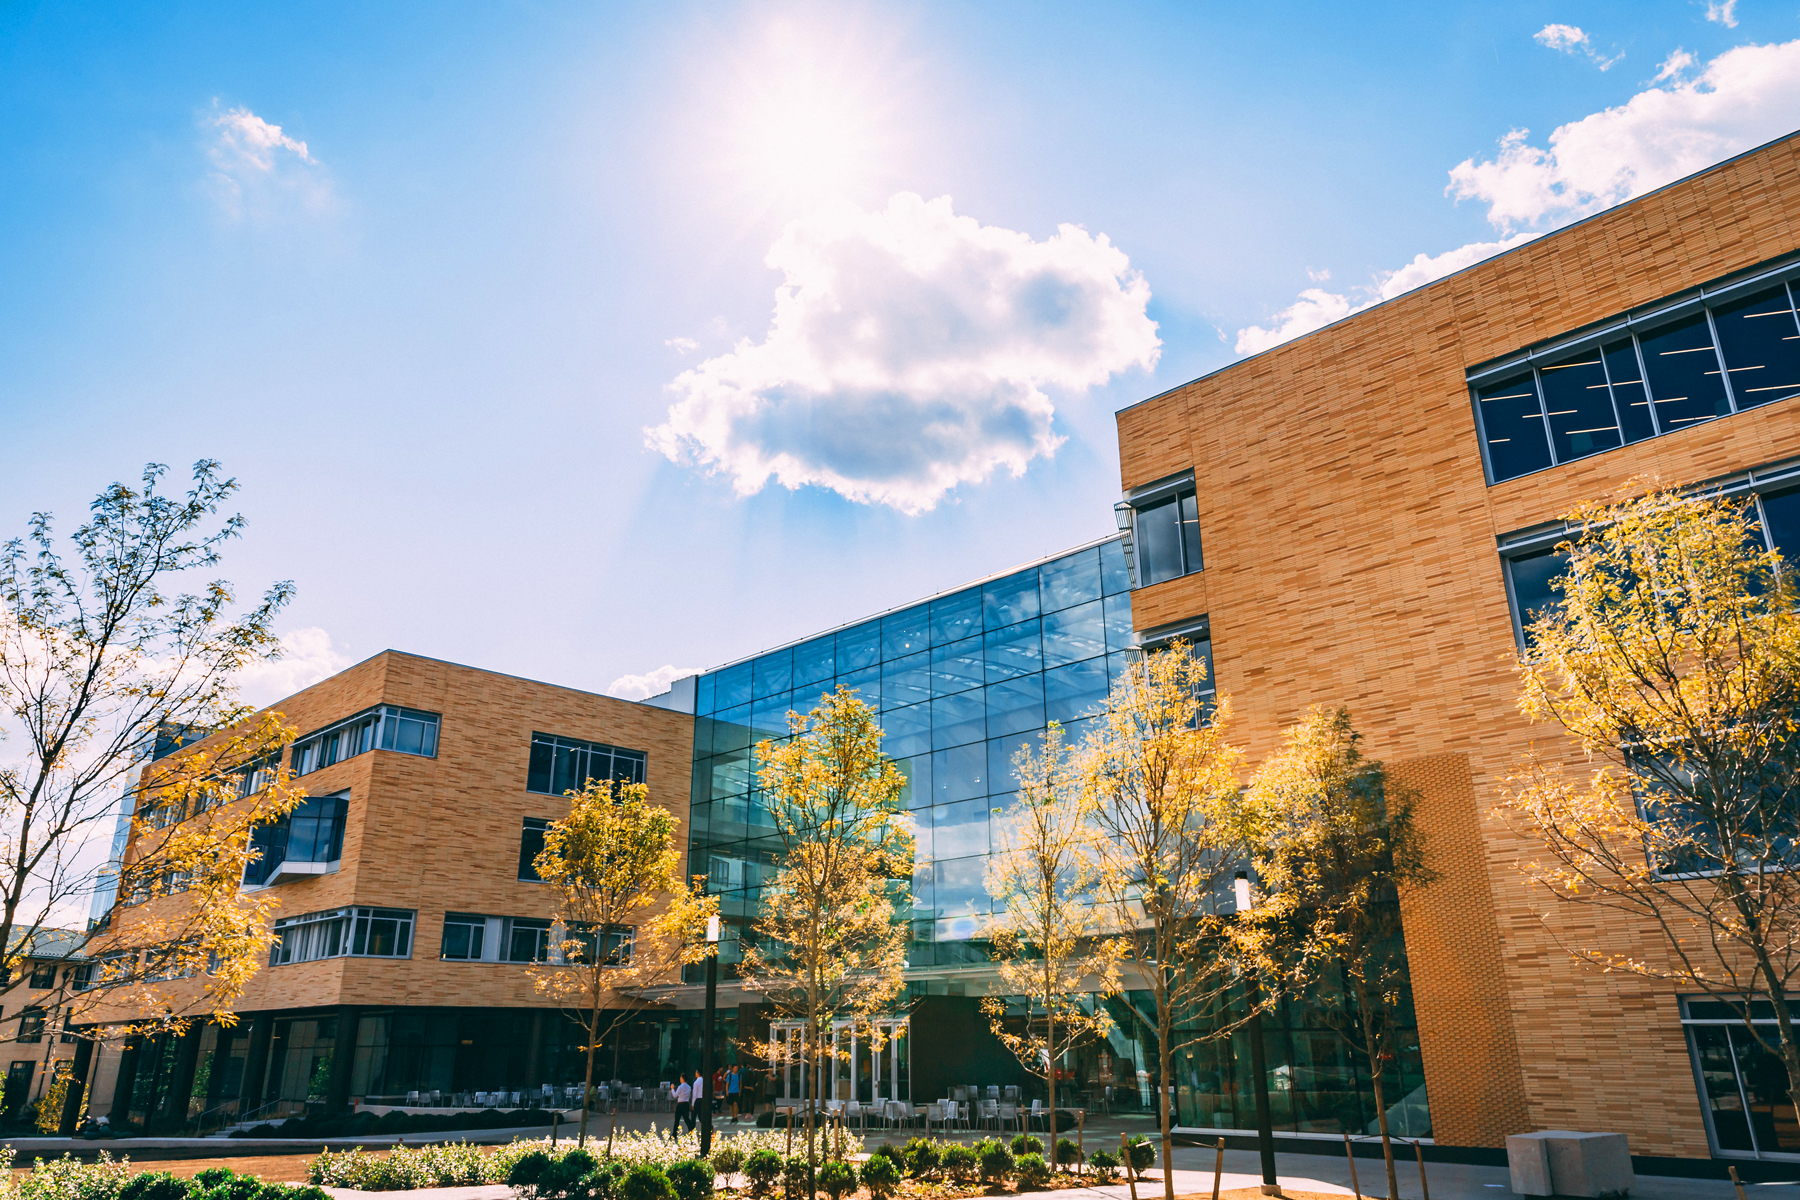 Construction of the new home of Carnegie Mellon's Tepper School of Business was completed in fall 2018. The building was designed to be environmentally sustainable despite its massive footprint.